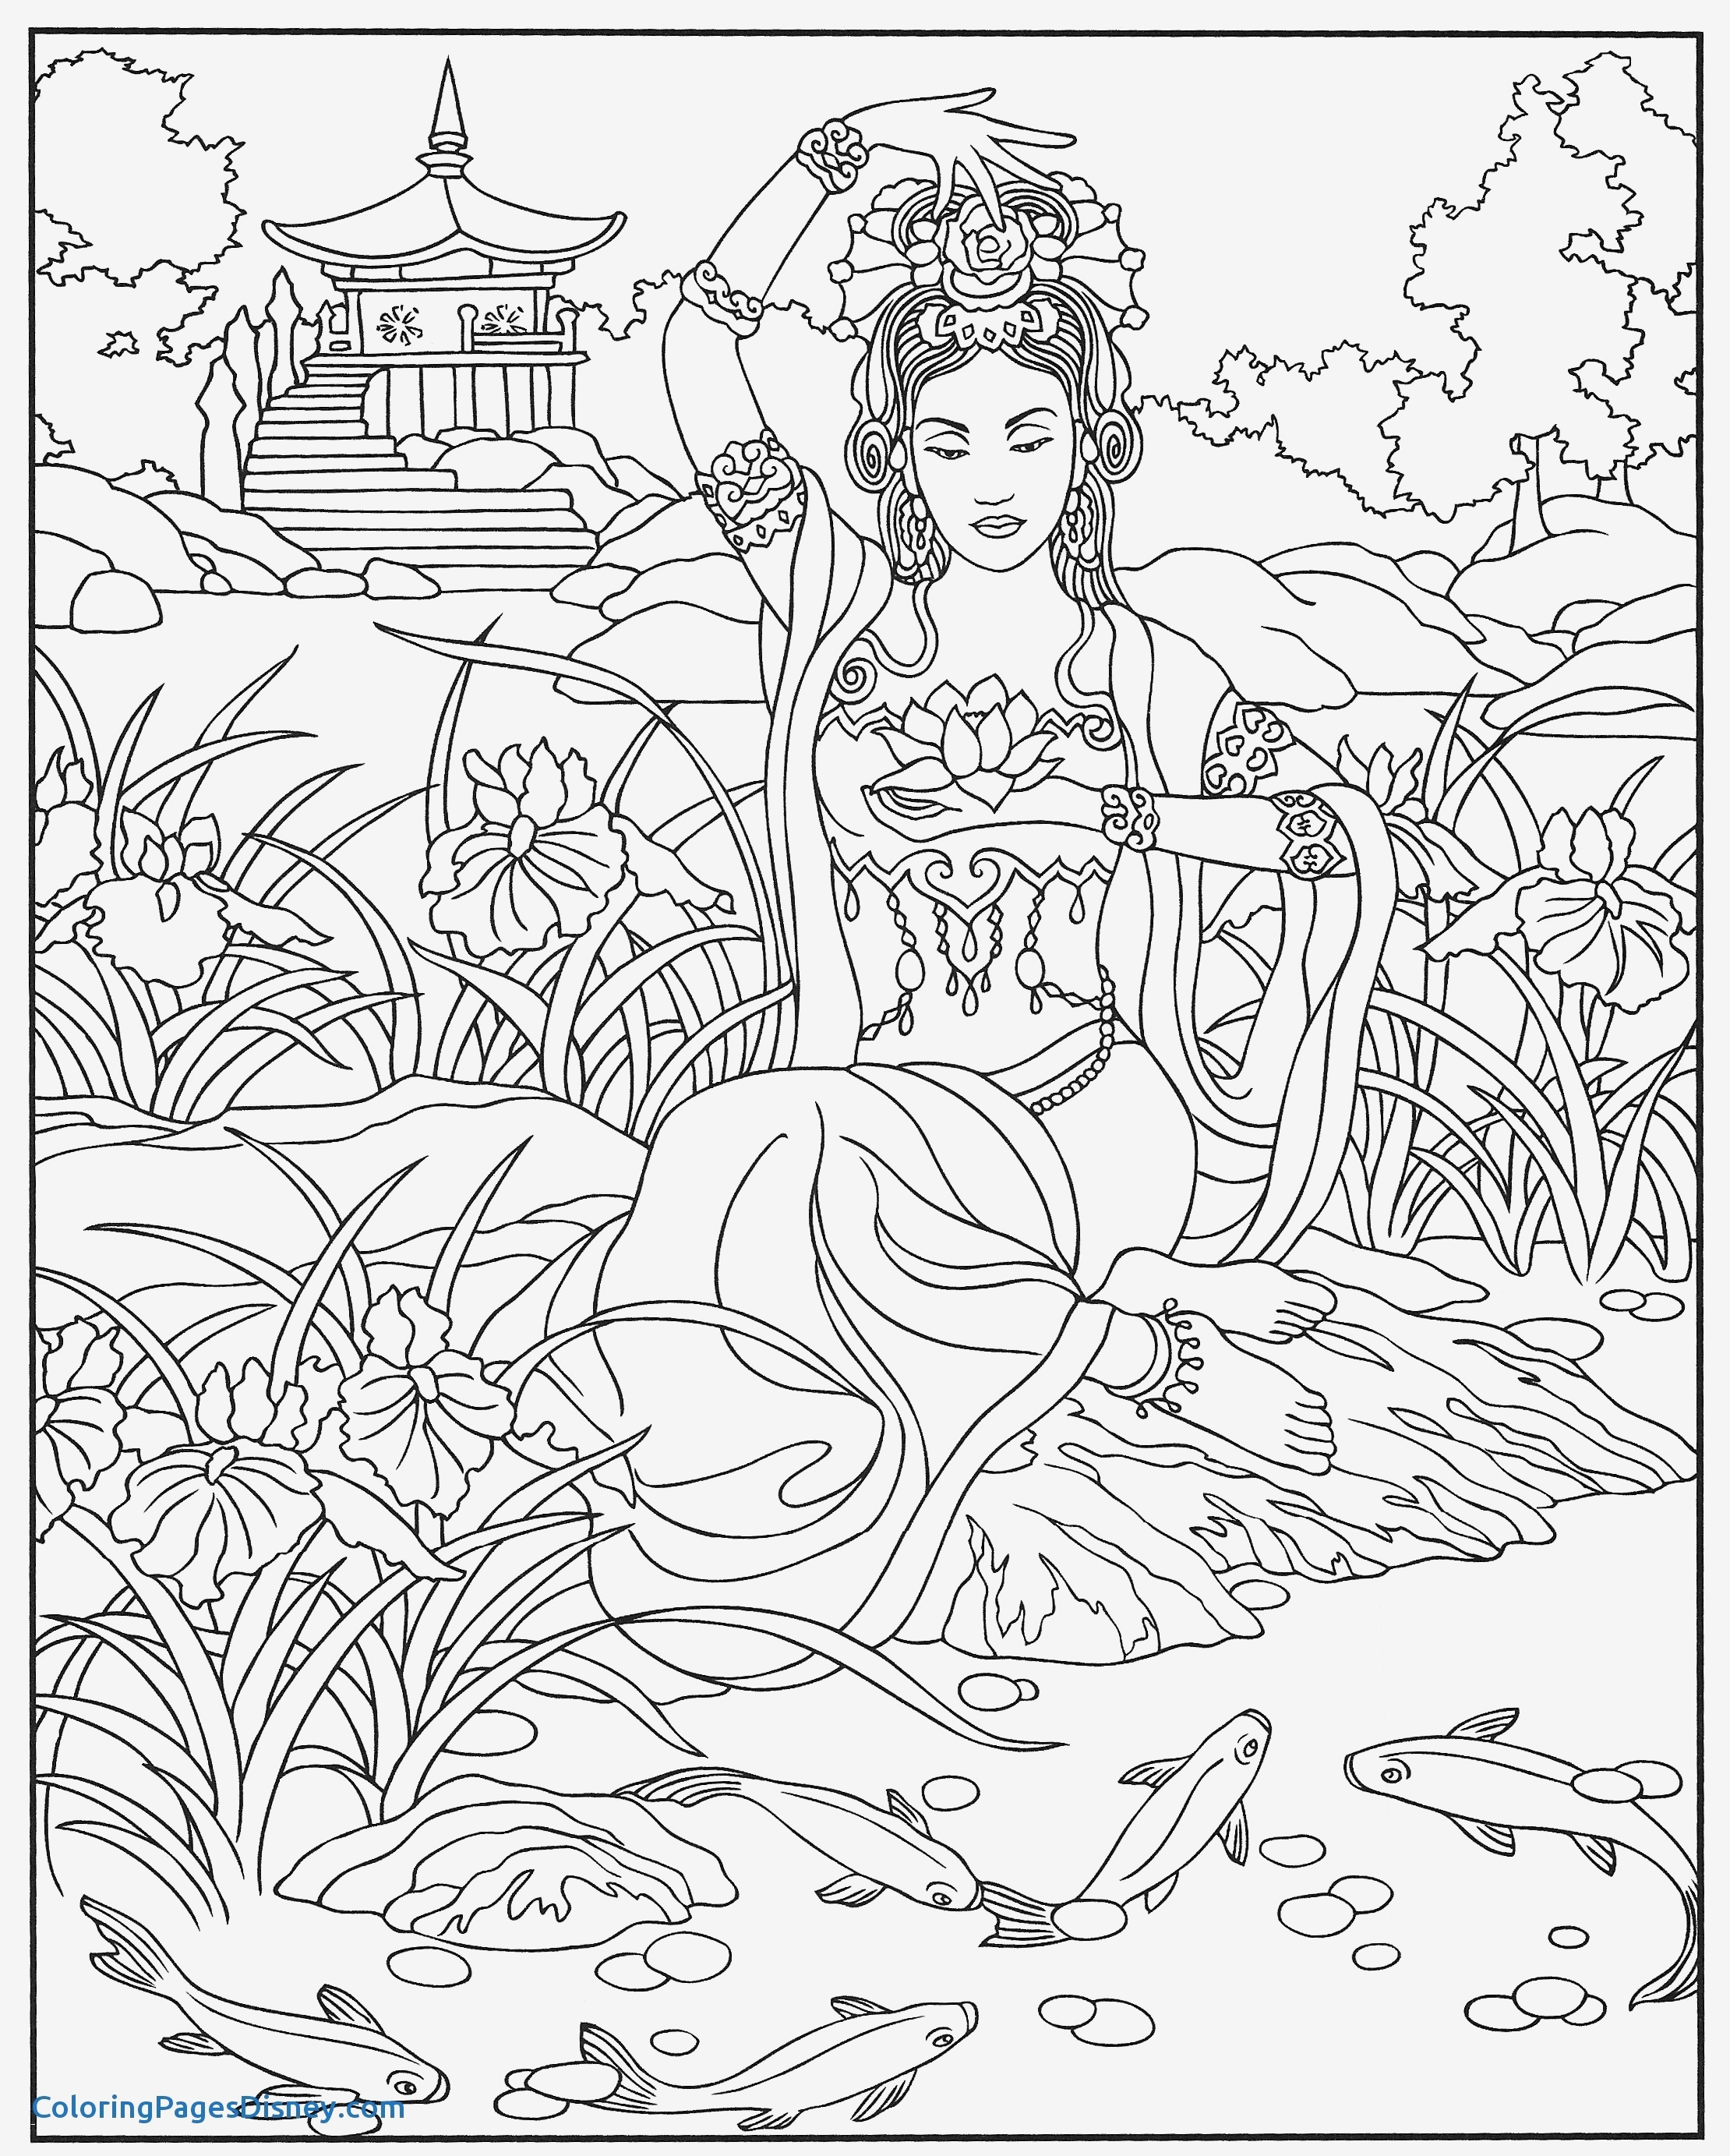 library coloring pages Download-Belle Coloring Pages Easy and Fun Lion King Lion Unique Princess Coloring Pages Belle Printable 17-i